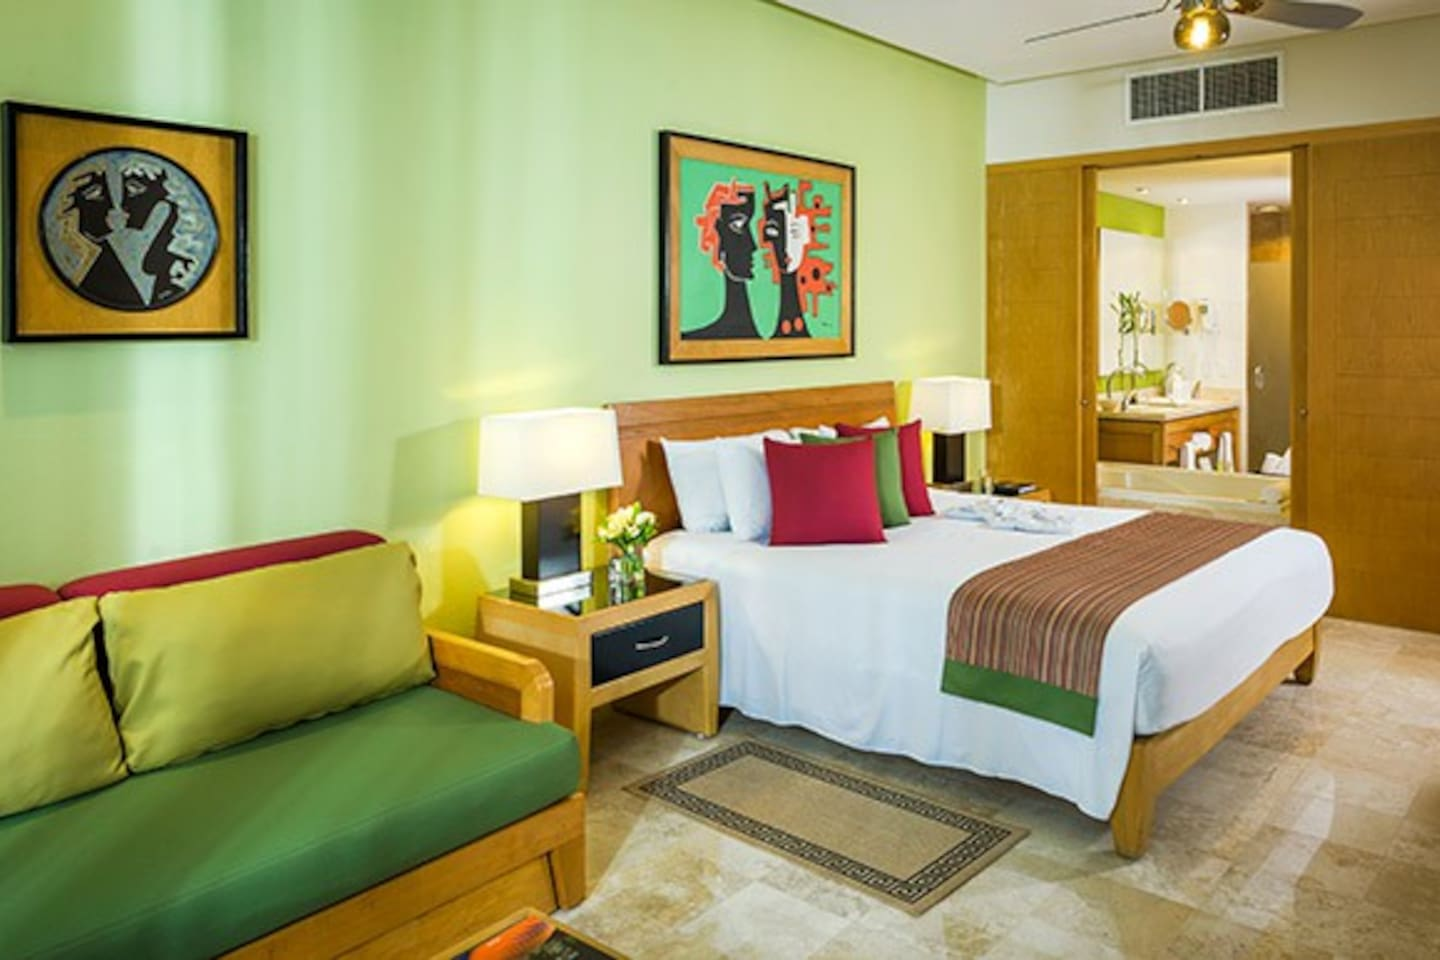 Room design, the guest can choose either one king bed or two queen beds.